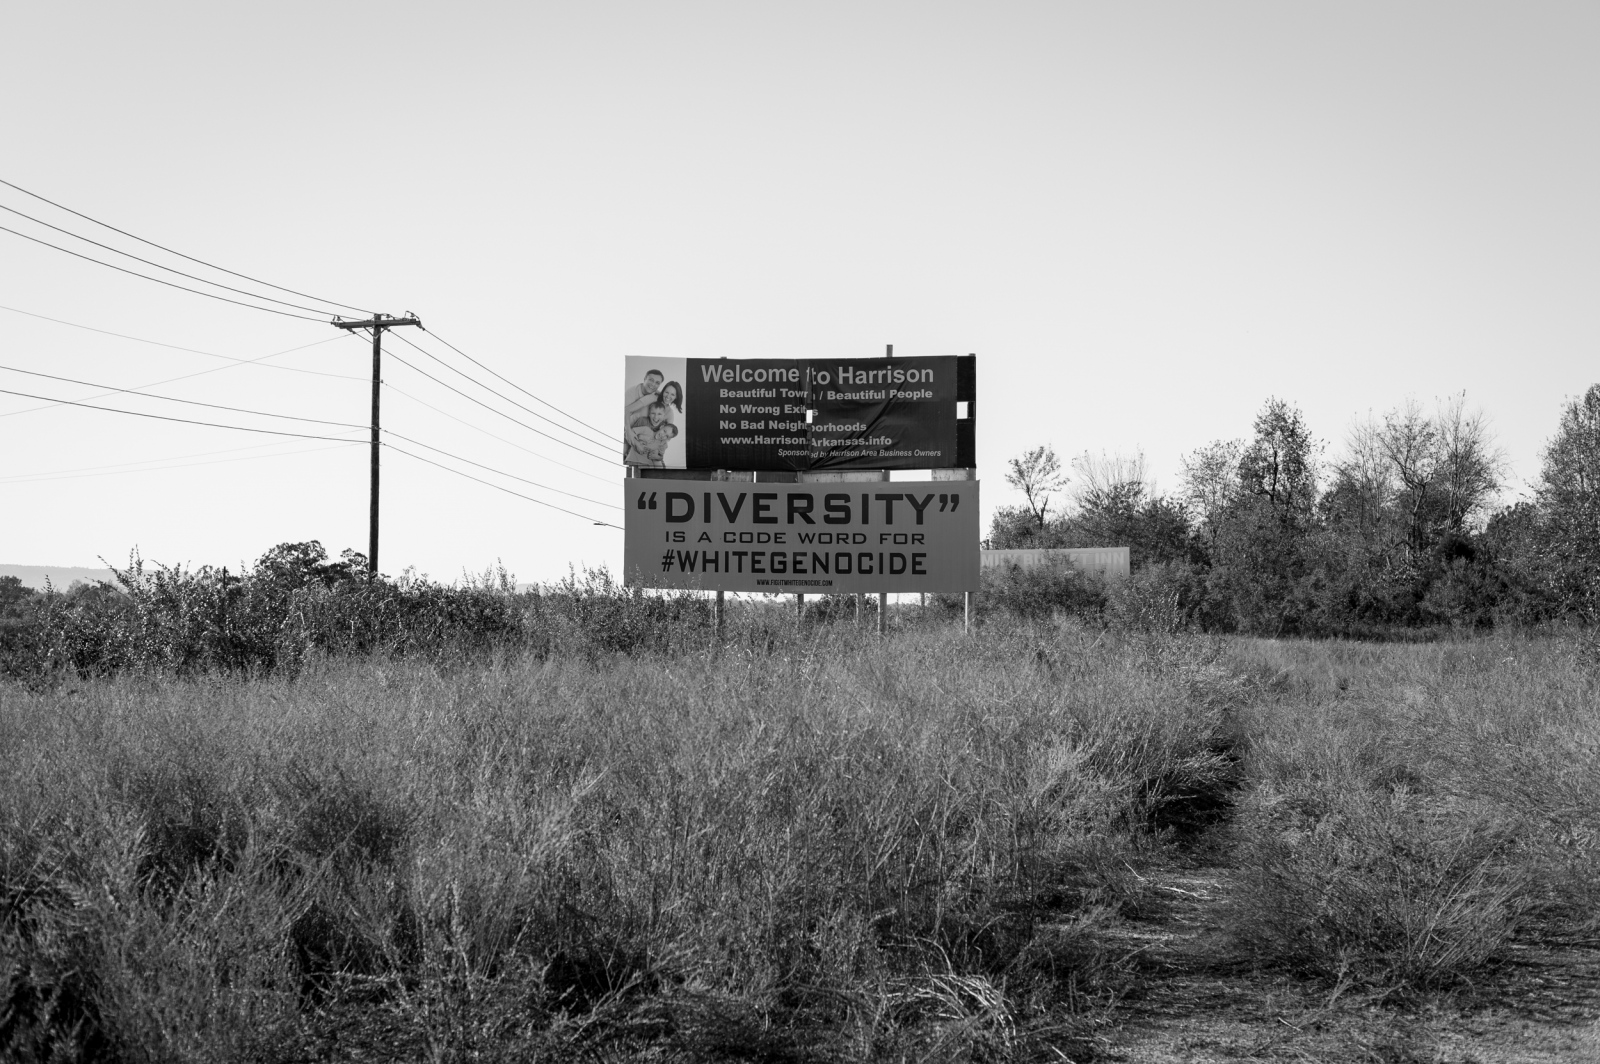 """Harrison, Arkansas.A billboard mocking the """"politically correct meaning"""" and """"dangers"""" of forced Diversity, sits under the """"Welcome to Harrison"""" sign. According to a recent petition on the White House's """"We The People,"""" website, """"White Genocide is - """"all white countries and only white countries are being flooded with third worlders, and whites are forced by law to integrate with them as to """"assimilate,"""" i.e. intermarry and be blended out of existence."""" """"Deliberately inflicting on group conditions of life calculated to bring about its physical destruction in whole or part."""" """"Diversity is a code word for White Genocide."""""""